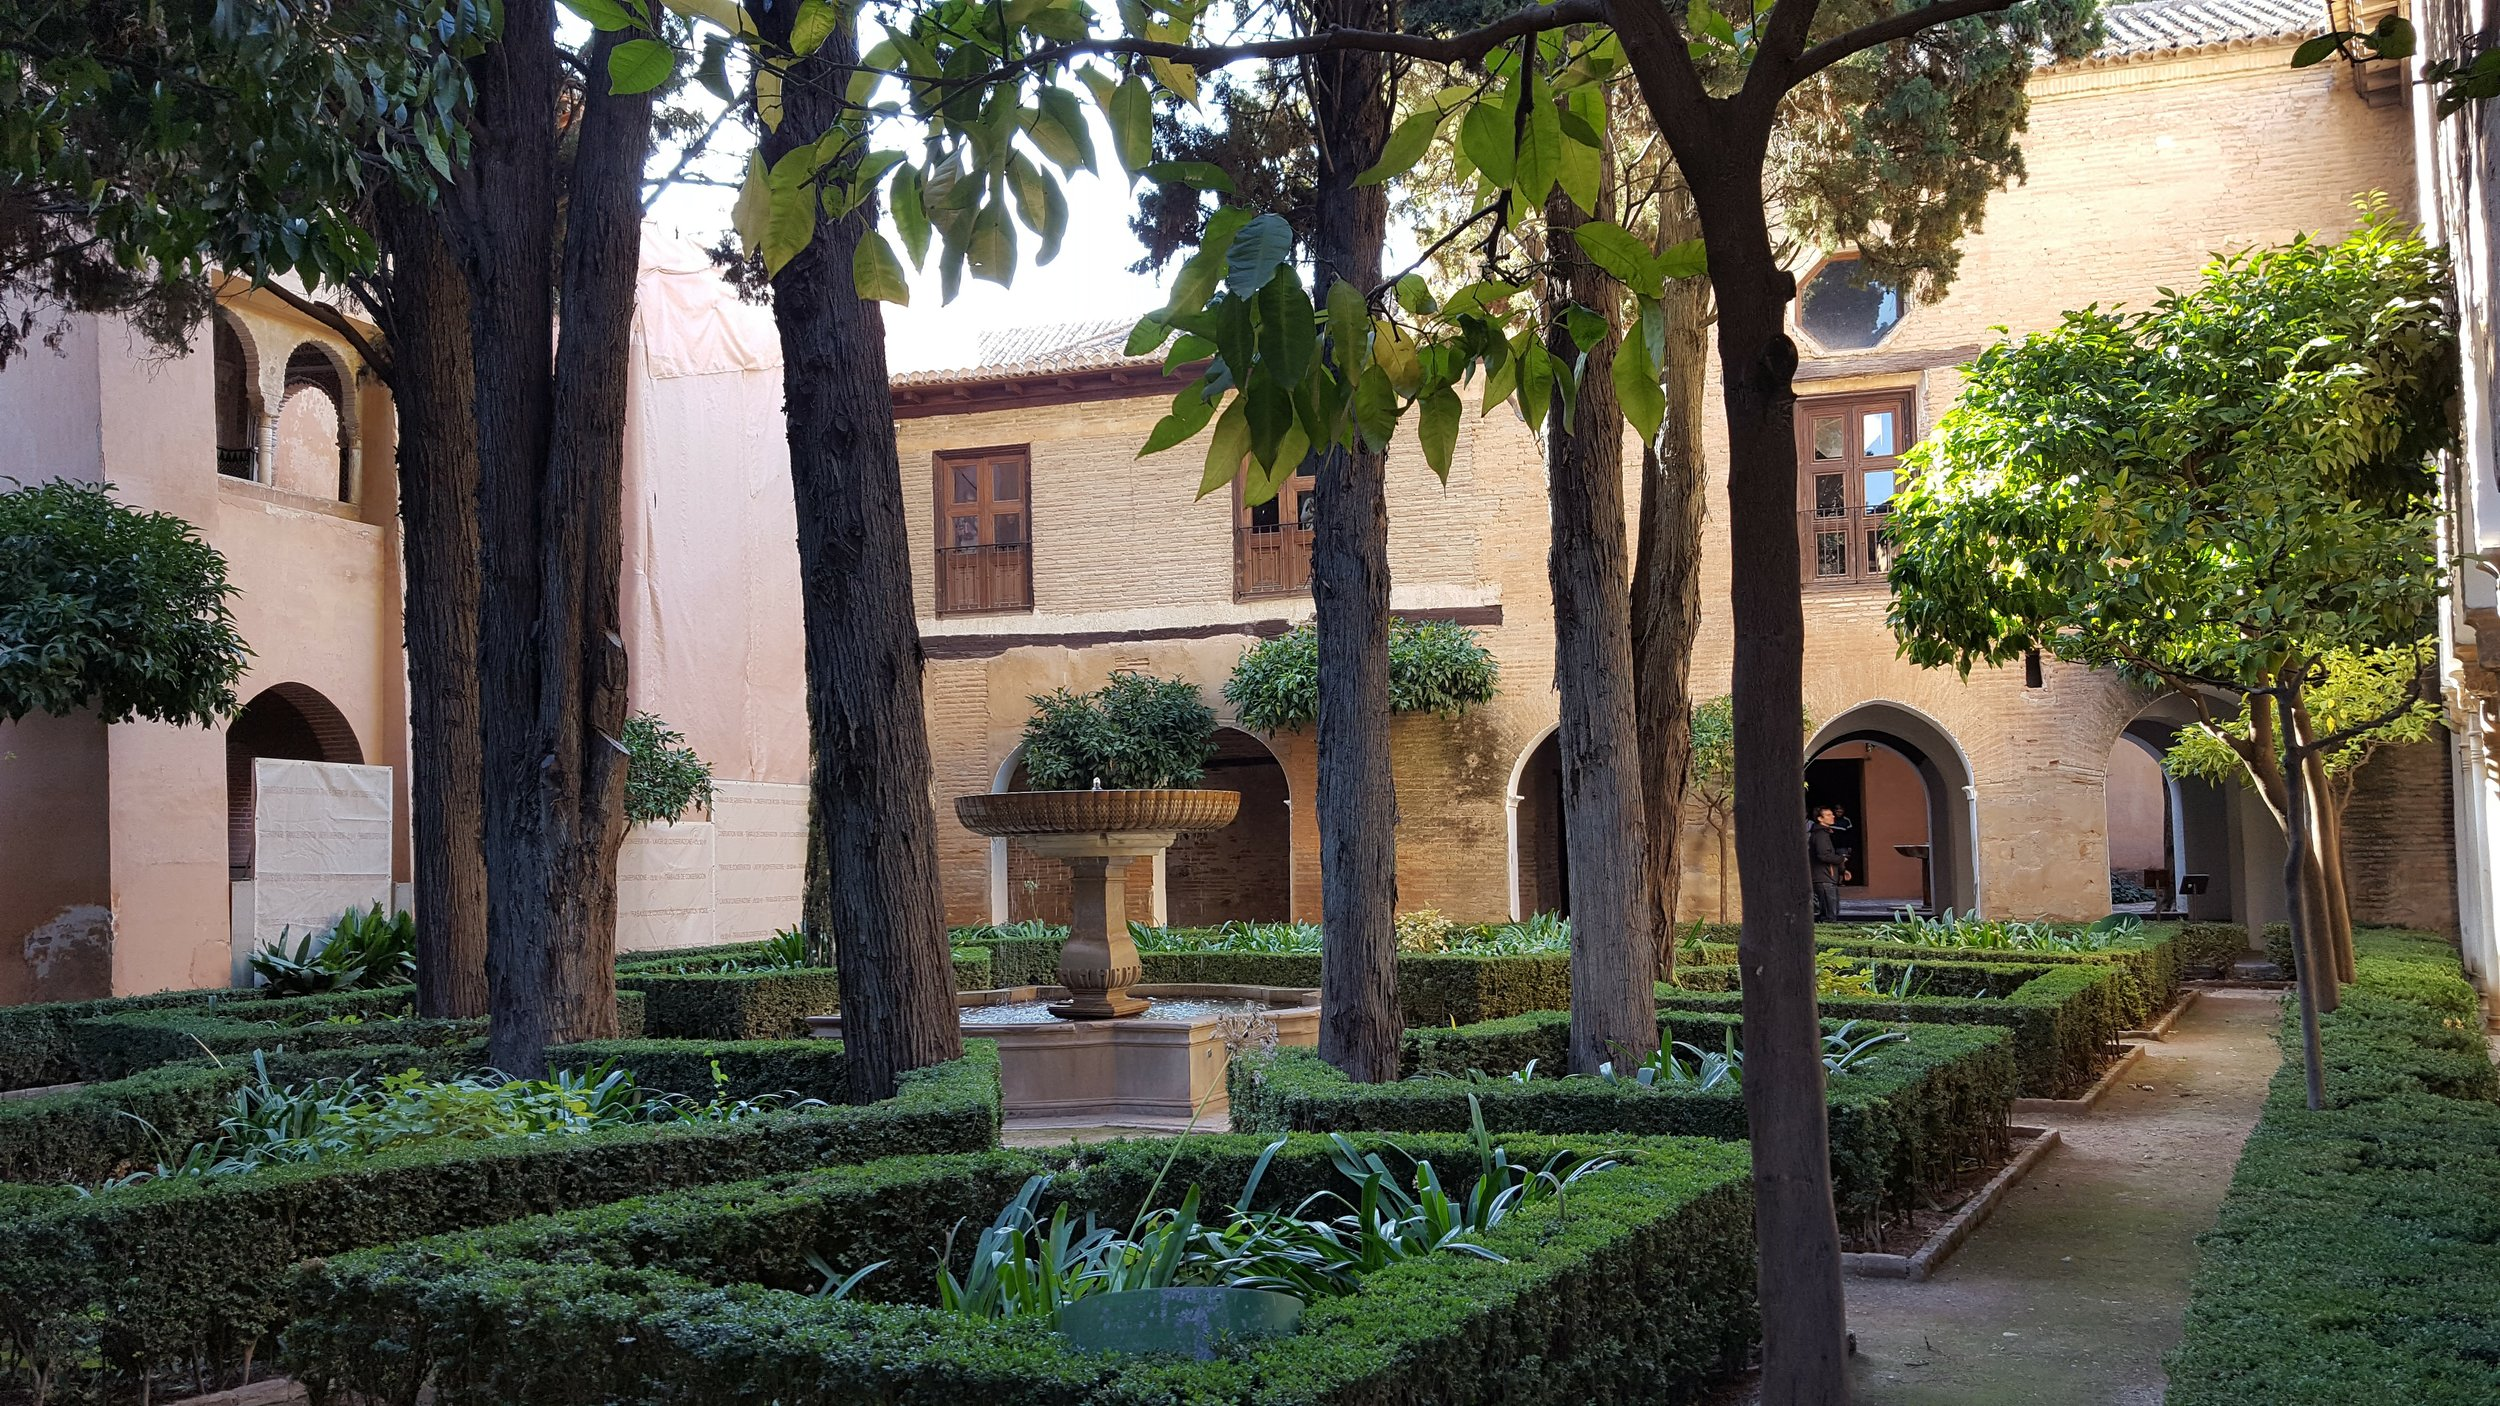 One of the many courtyards in the Alhambra in Granada